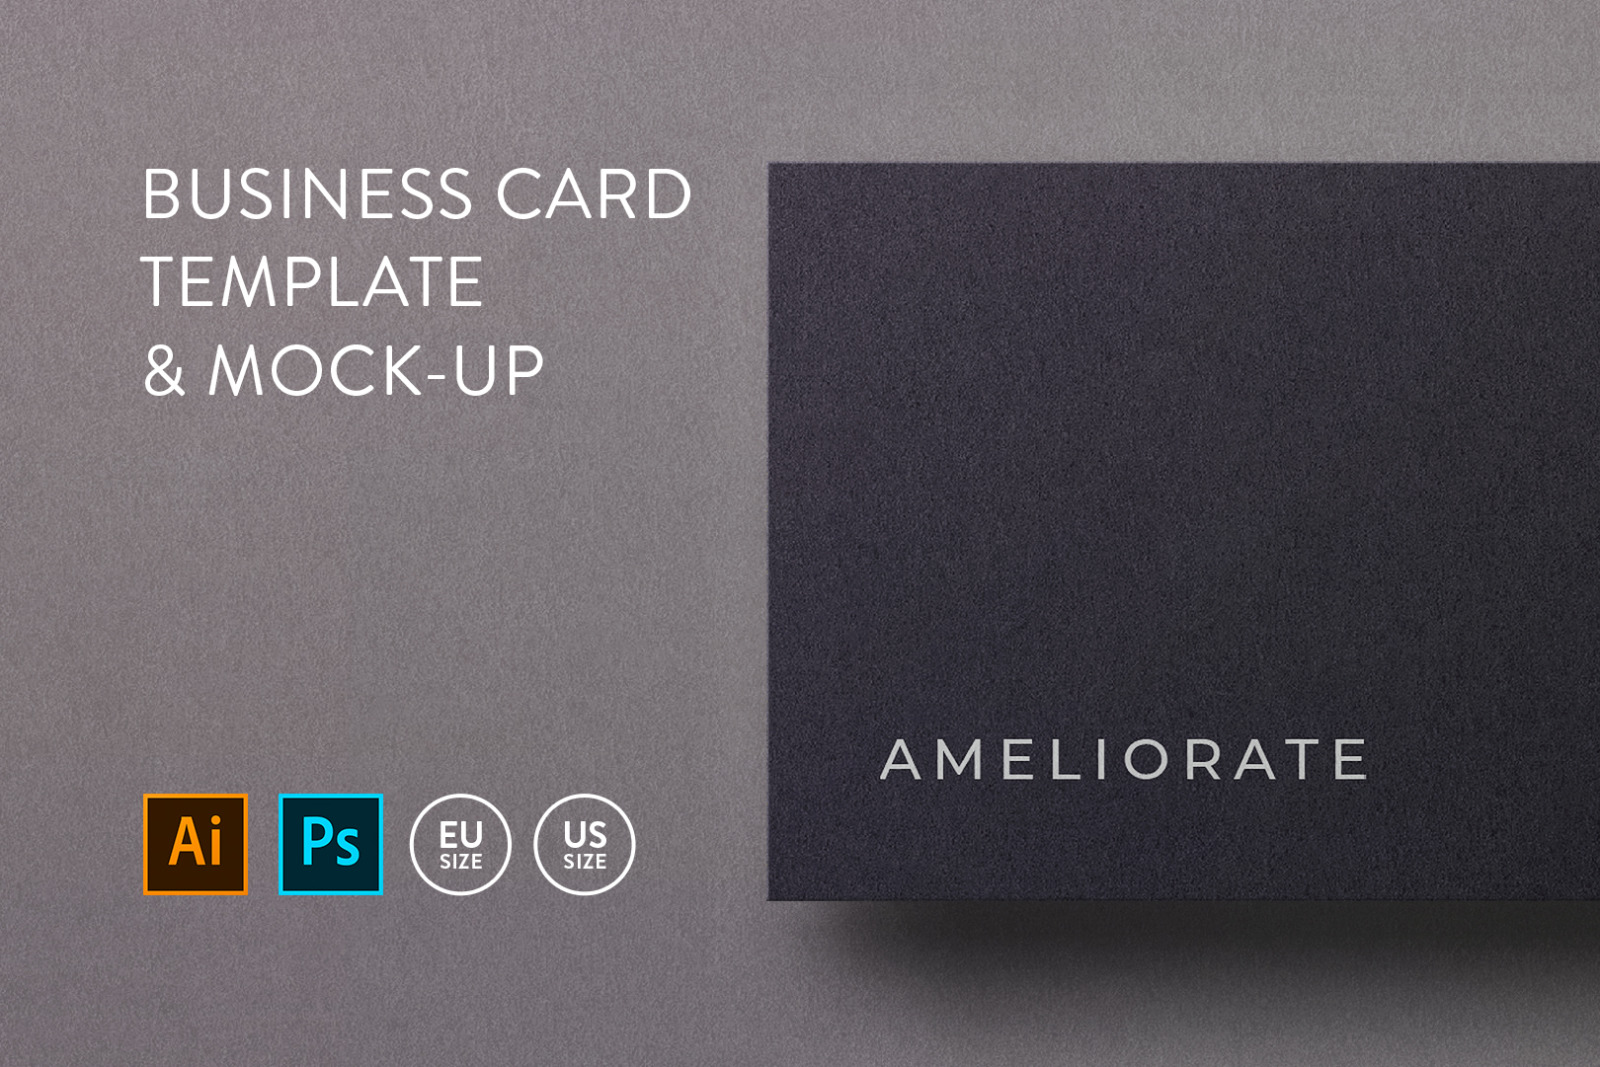 Business card Template & Mock-up #17